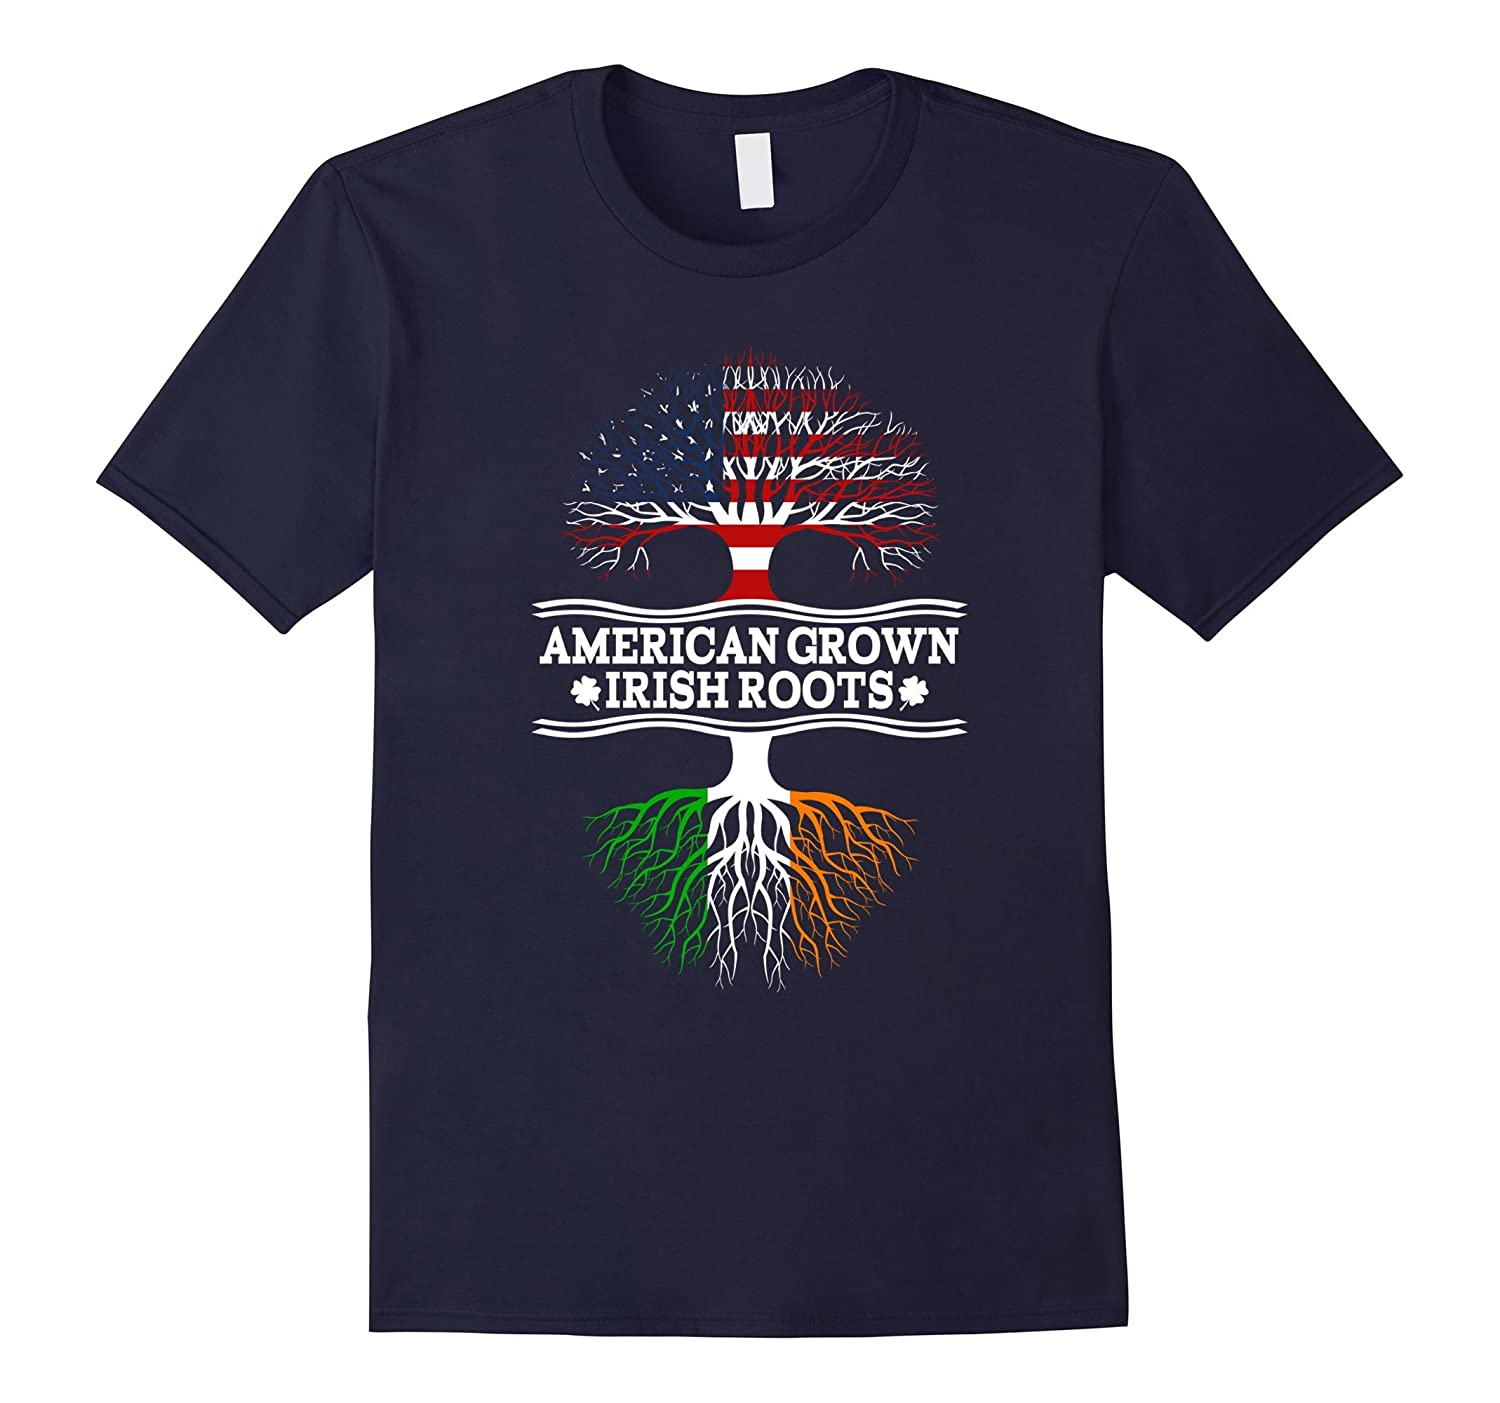 American Grown With Irish Roots Awesome T-Shirt Ireland-CL